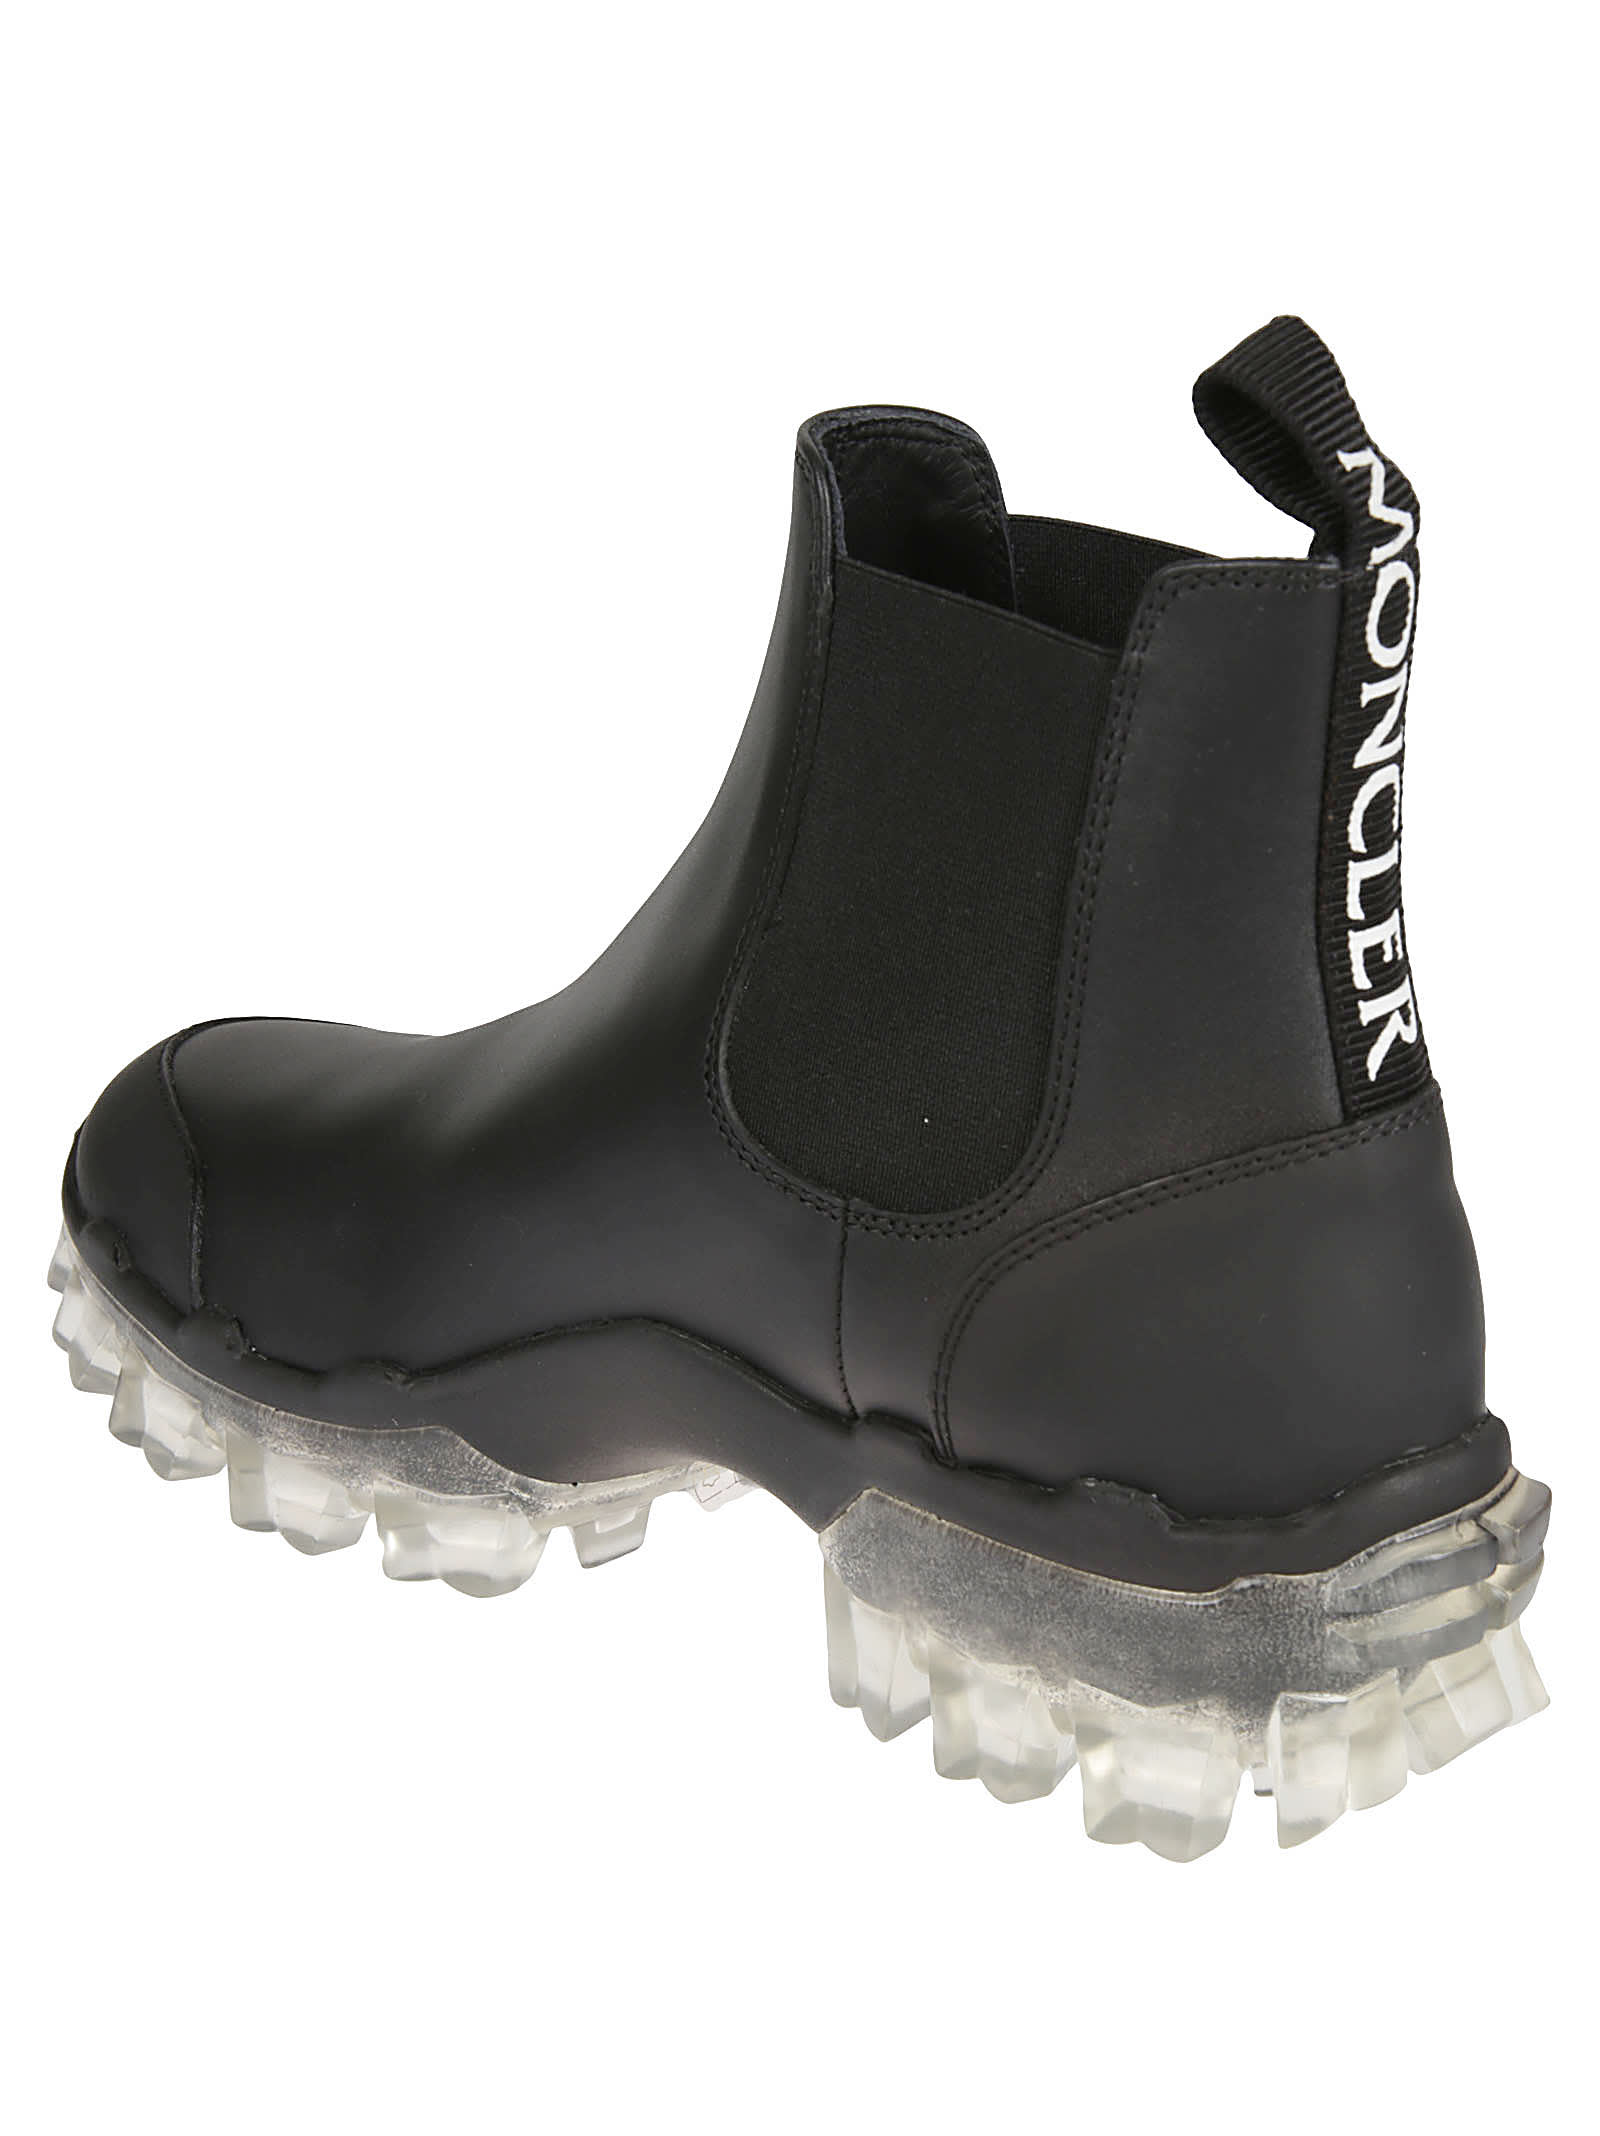 Cheap And Nice Moncler Hanya Boots - Great Deals